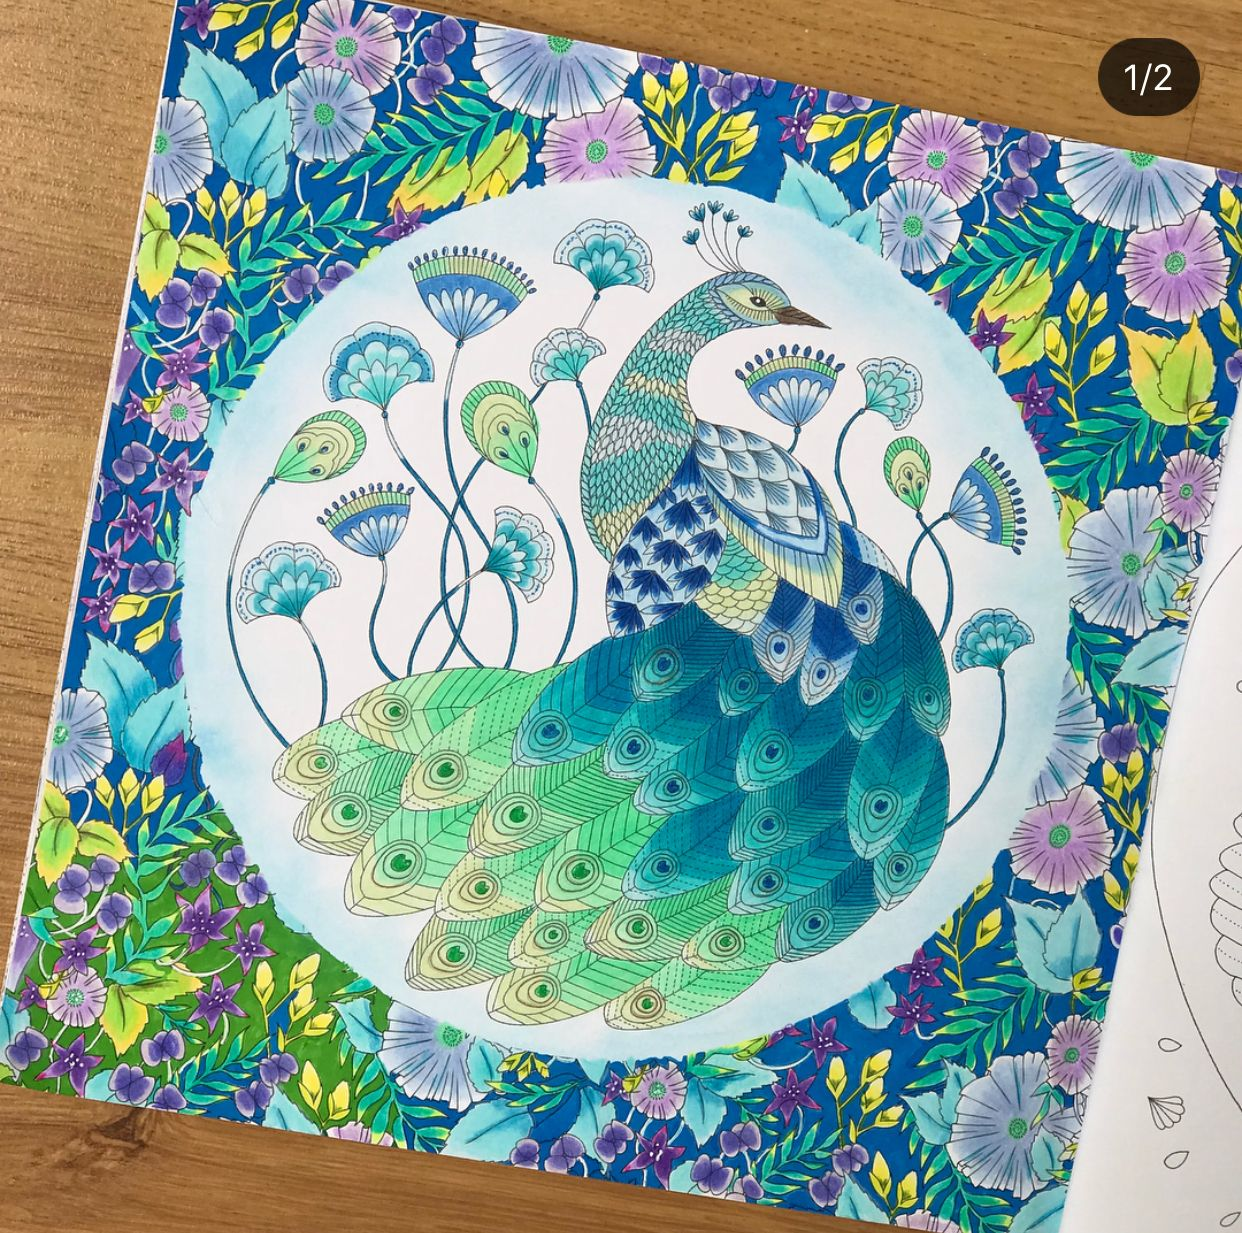 Millie Marotta Coloring Book Colored By Coloring Book Artist A To Millie Marotta Coloring Book Animal Kingdom Colouring Book Millie Marotta Tropical Wonderland